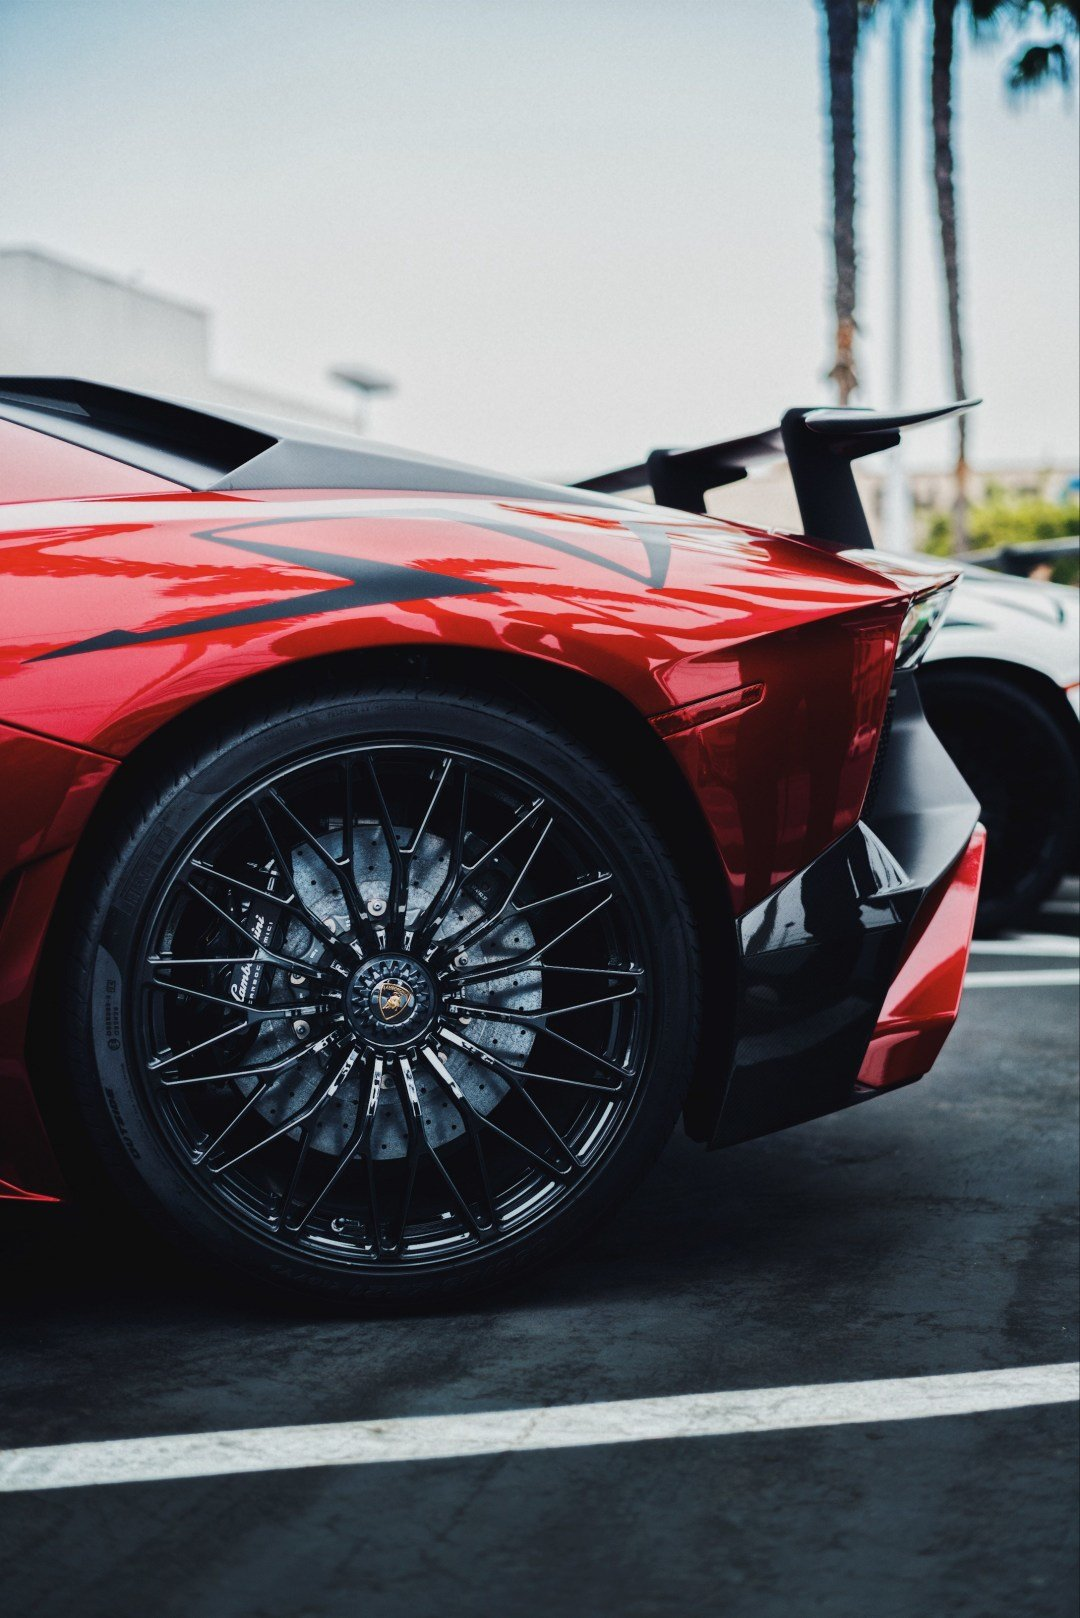 New Car Red Sports Car And Wheel Hd Photo By Chris Nguyen On This Month